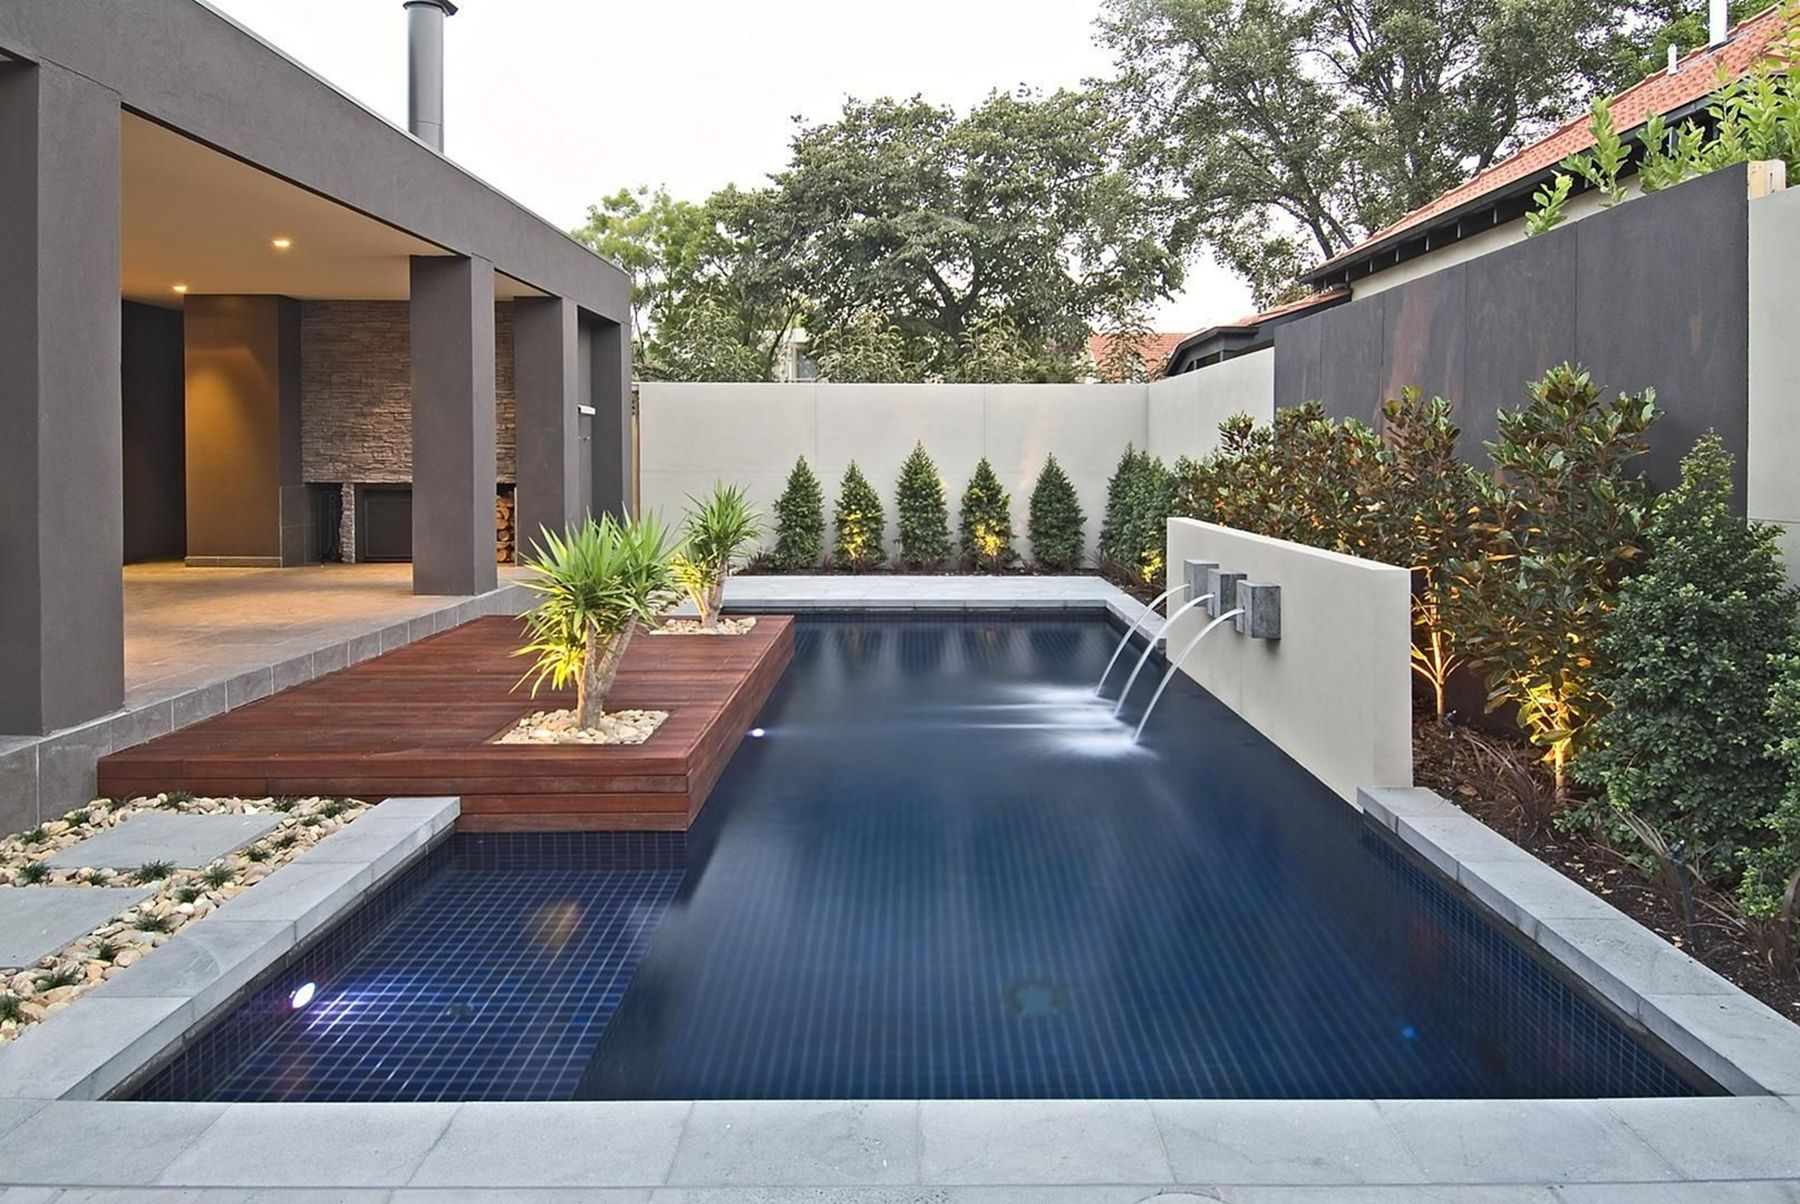 Pin On Home Outdoor Ideas Modern backyard ideas with pool